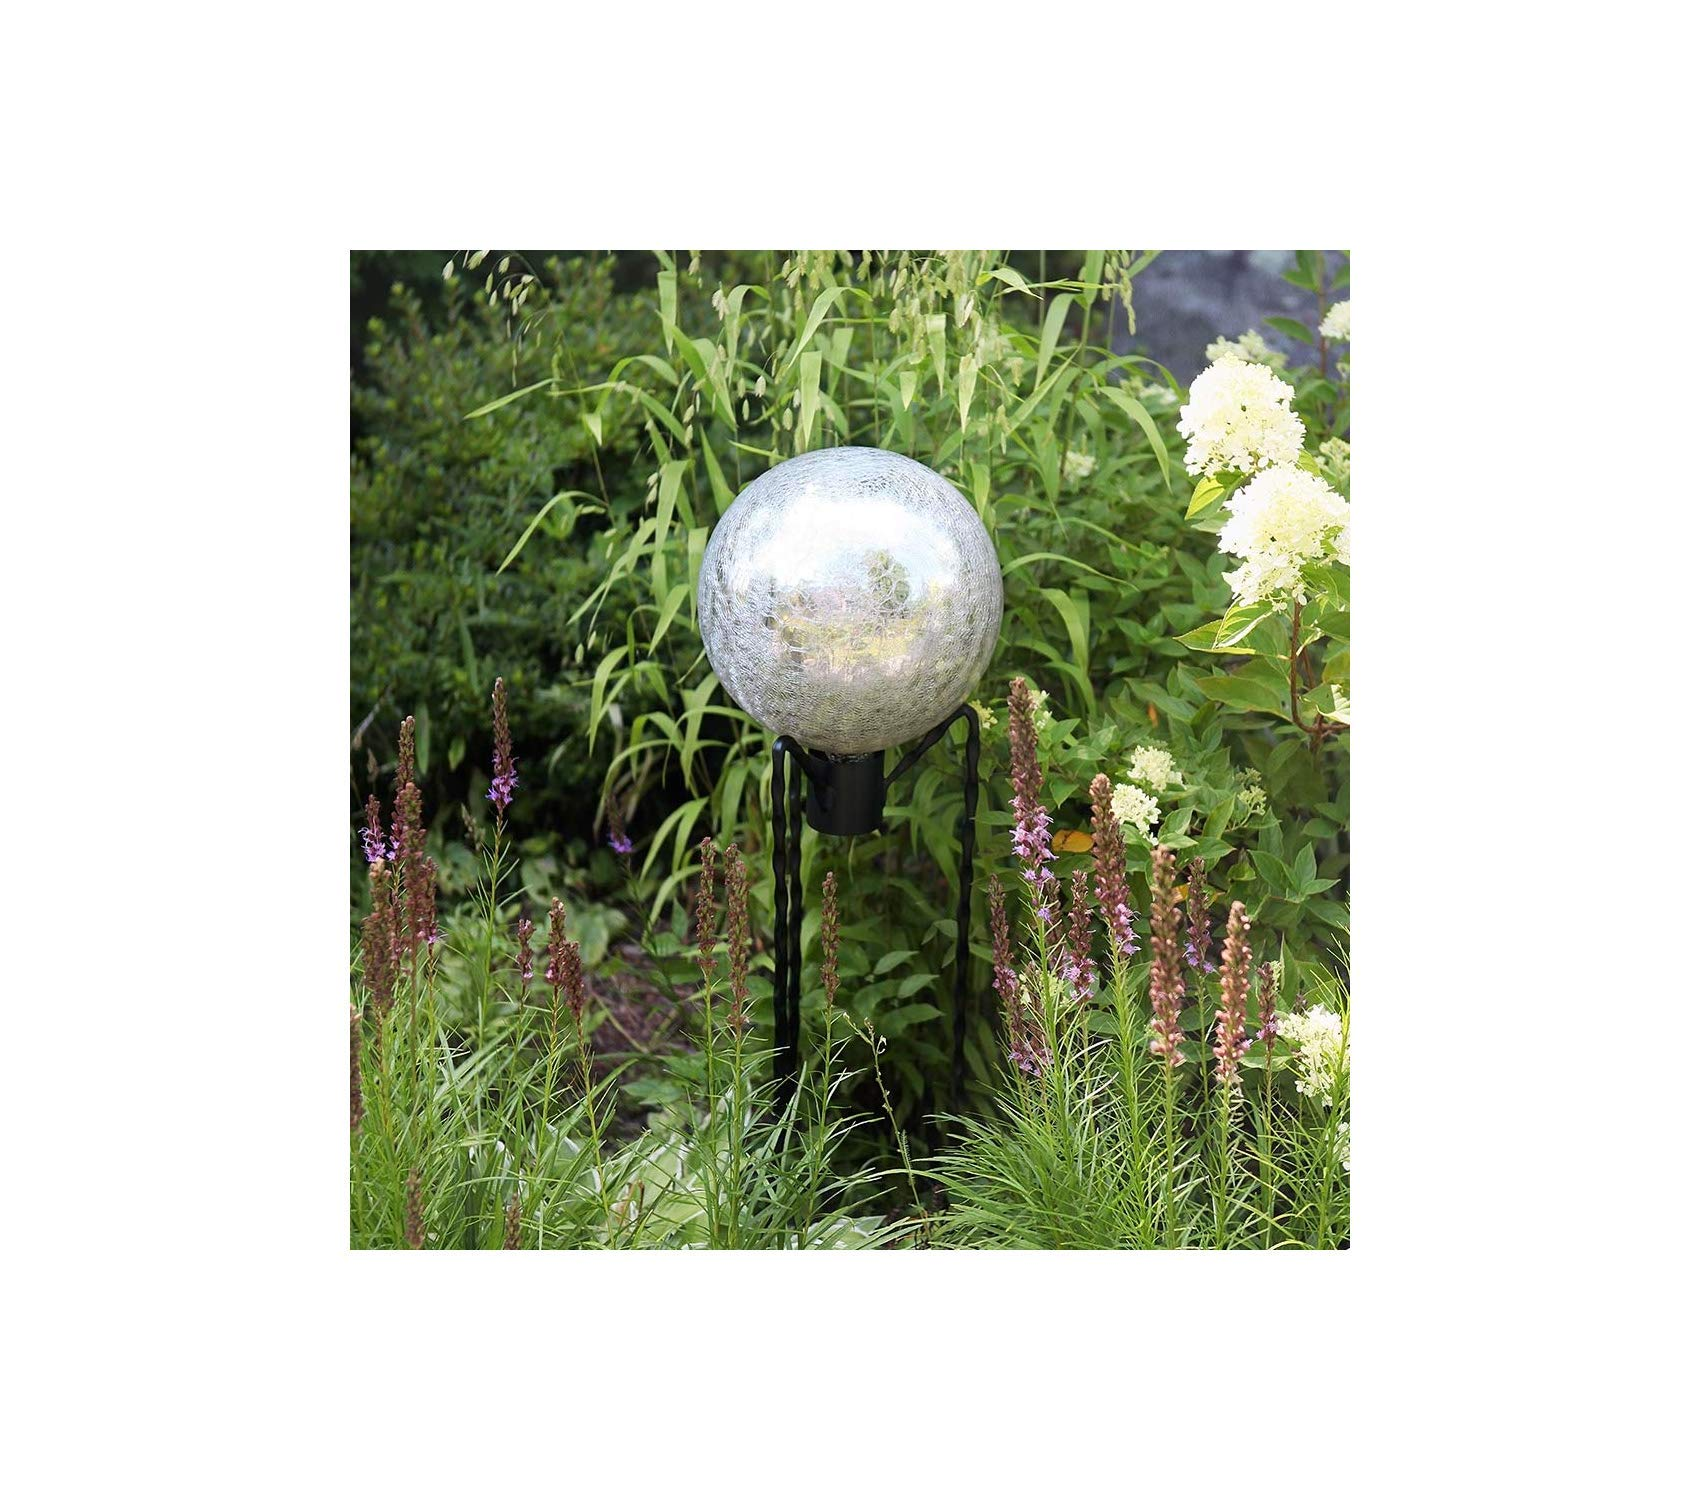 Аchlа Outdoor Garden Backyard Décor Designs Gazing Globe Ball Stand, 31-Inch H Spiked by Аchlа (Image #4)